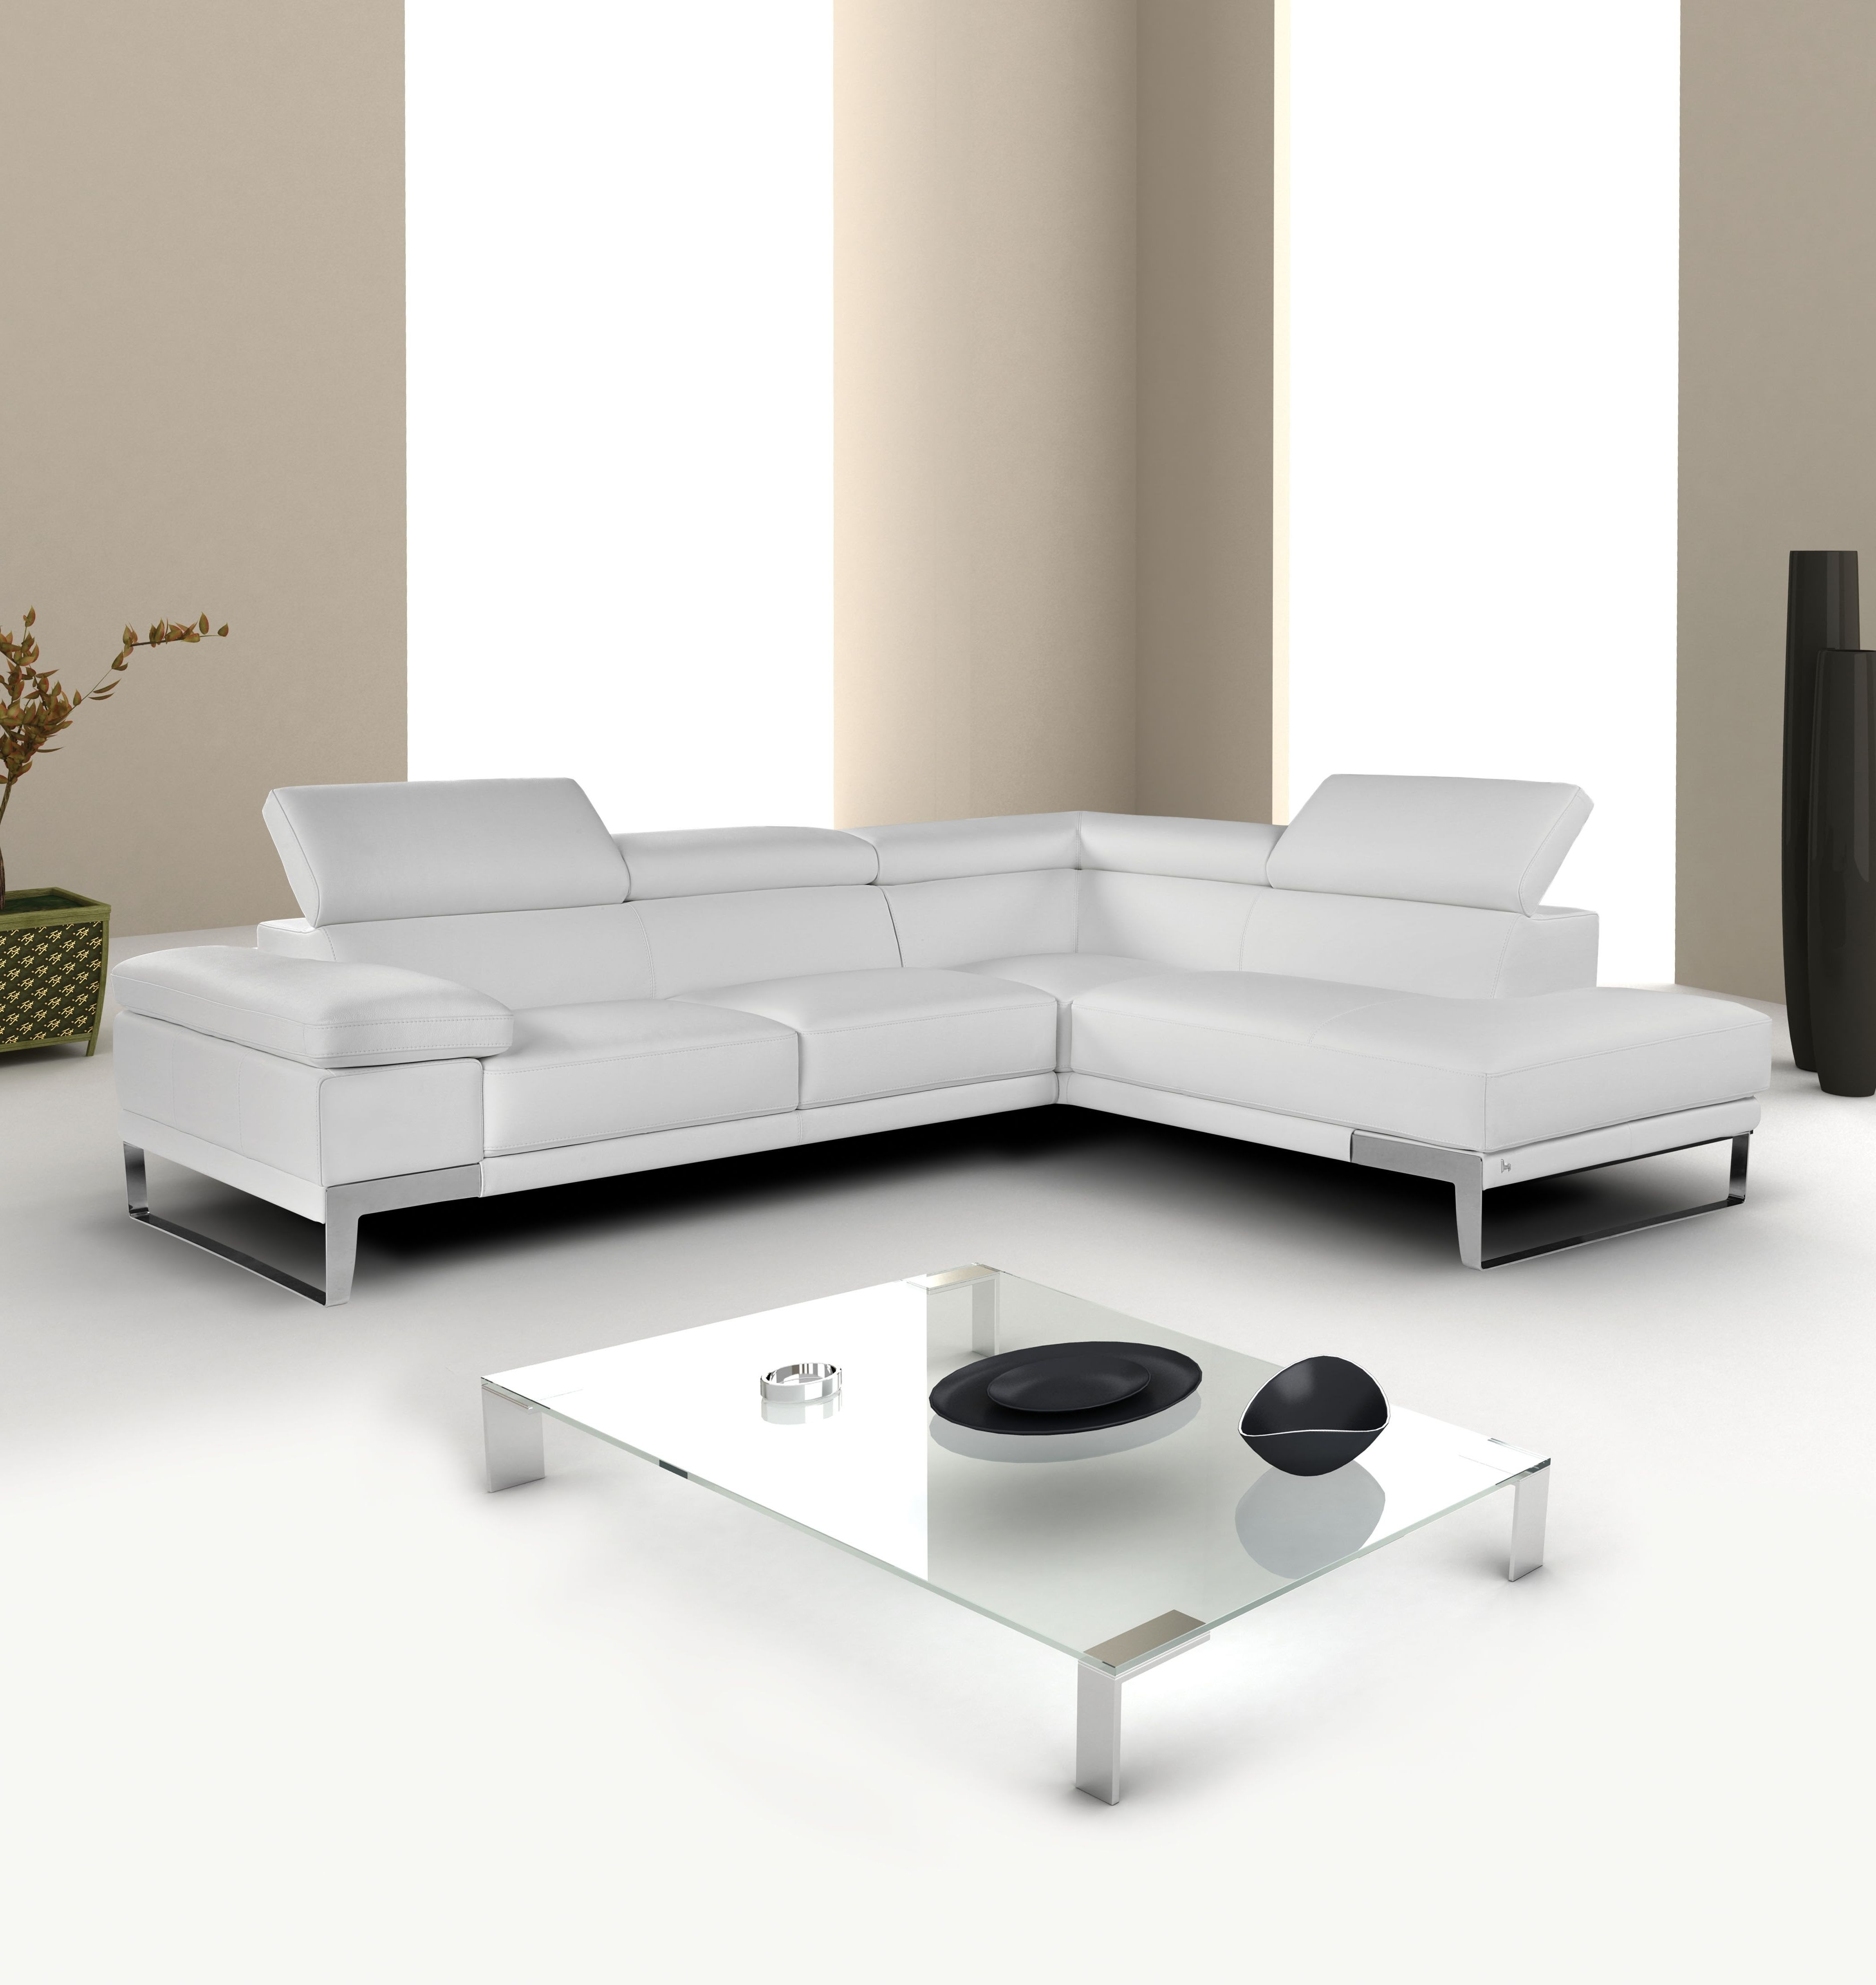 Vancouver Bc Canada Sectional Sofas Regarding Most Recently Released Sectional Modern Sofa Interior White Button Leather Furniture (View 14 of 20)